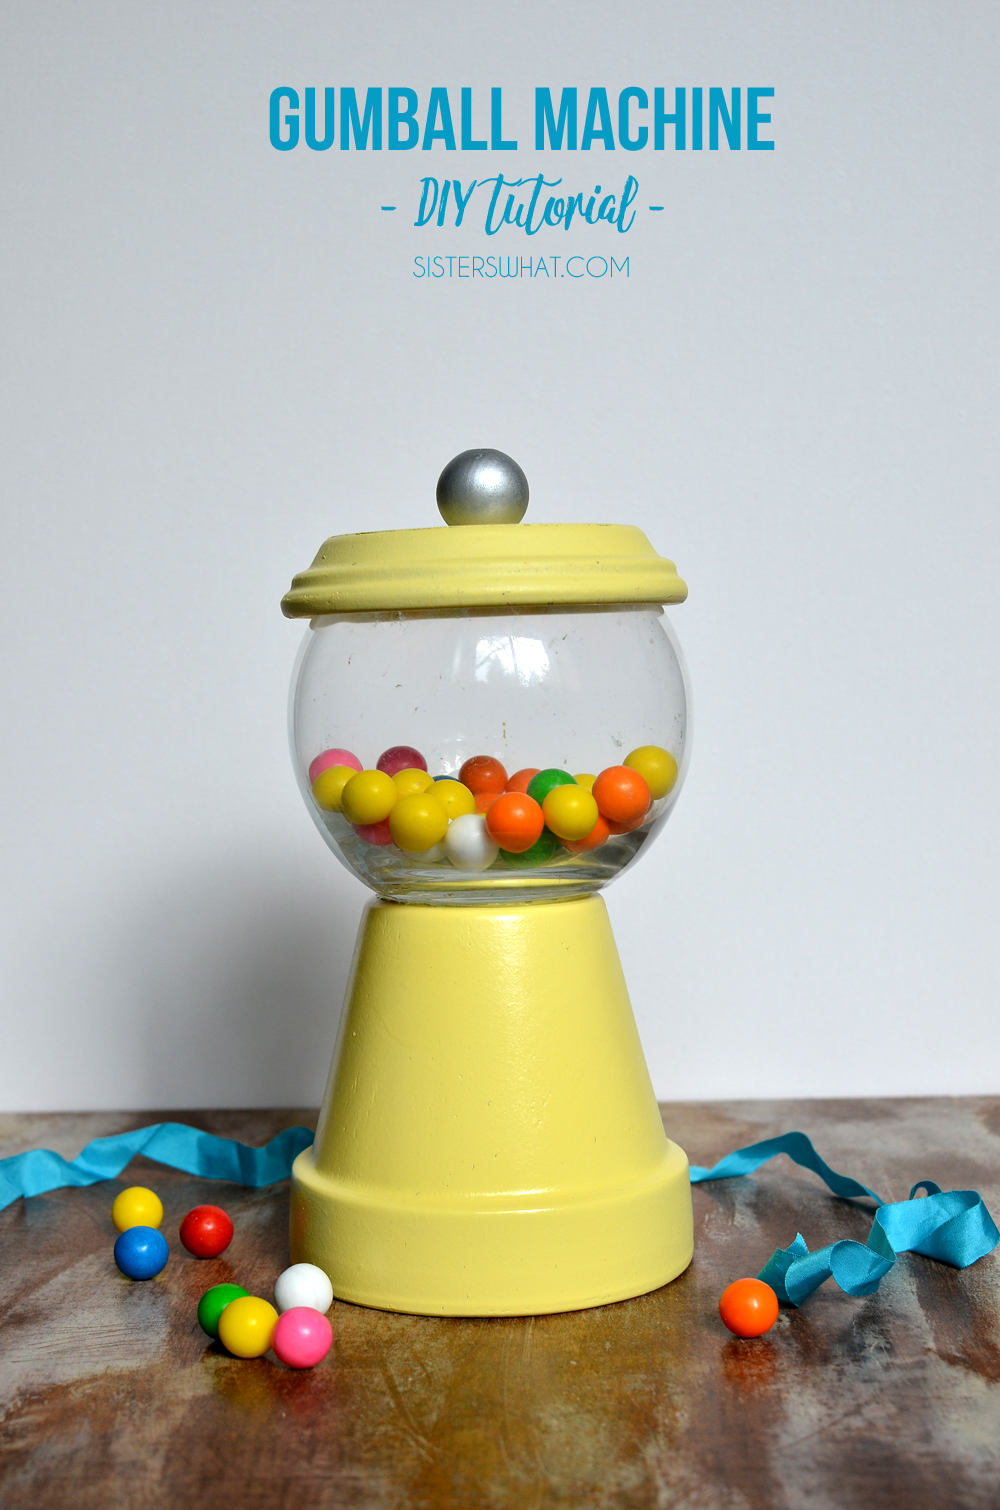 gumball machine party decor or home decor out of pot and glass fish bowl